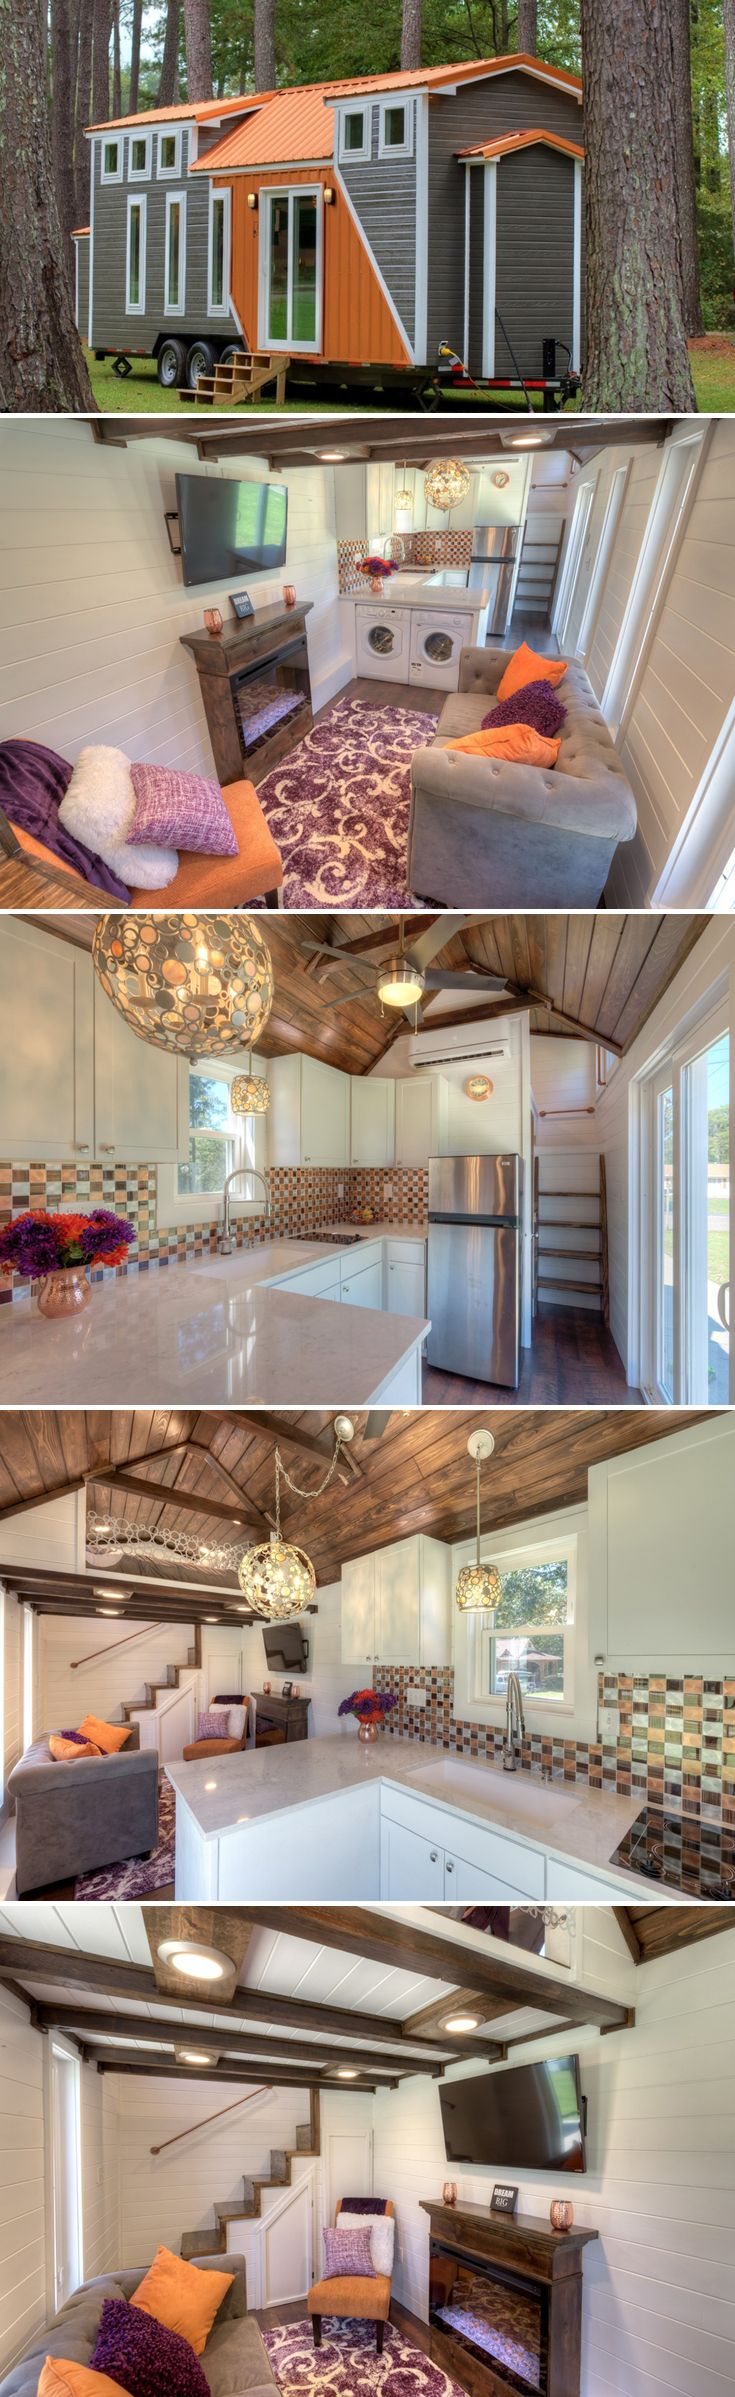 From Alabama Tiny Homes Is Another Beautiful 28 Trinity House On Wheels Complete